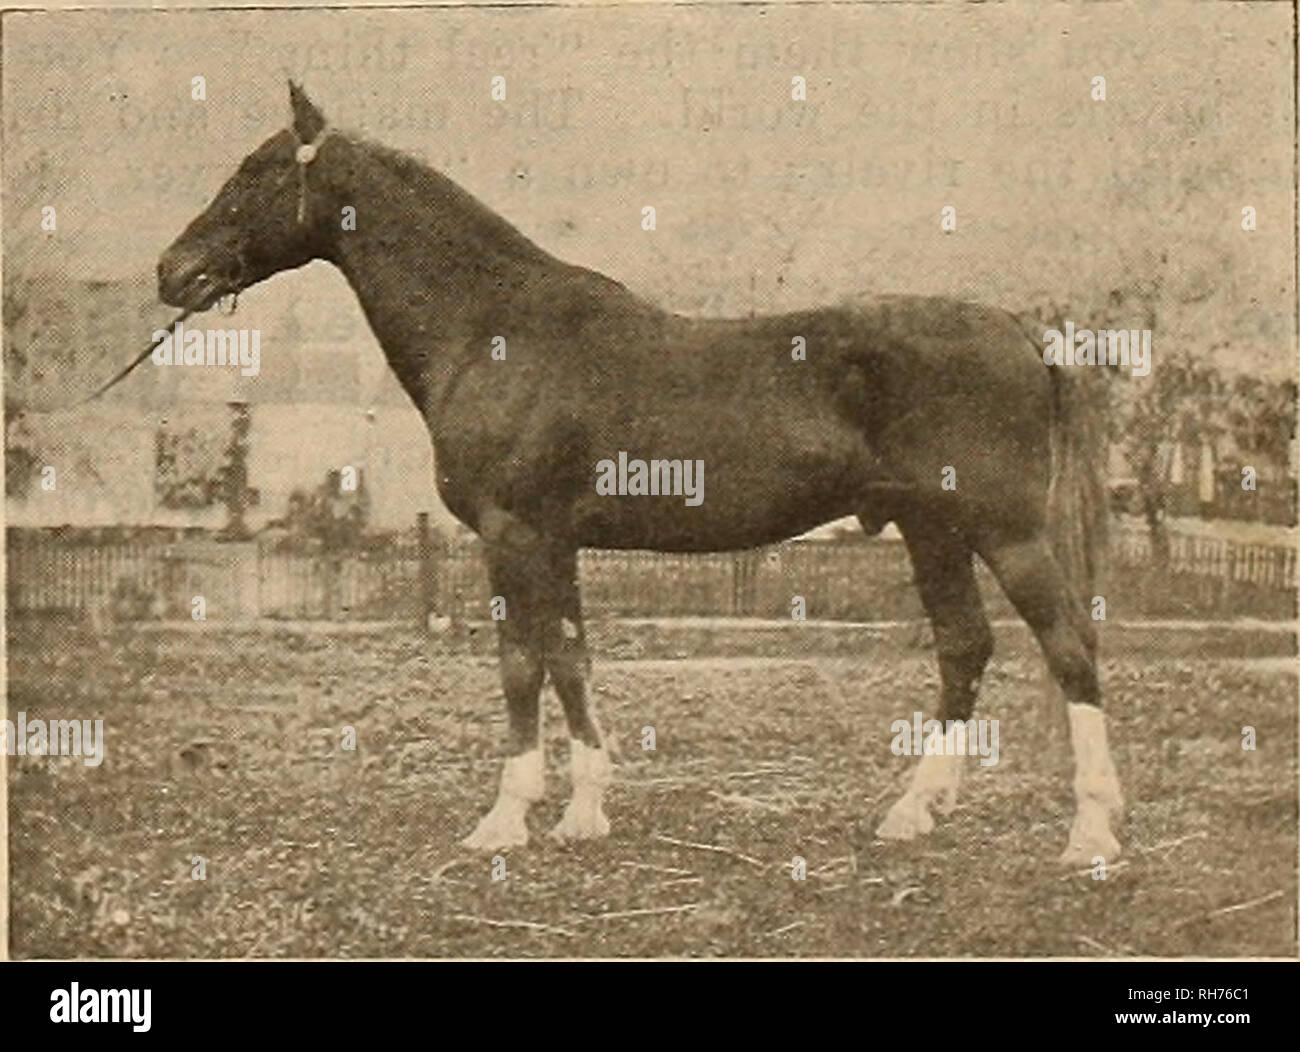 . Breeder and sportsman. Horses. STAH B. 2:11 1-* MONTEREY 2:09 1-4 SNAP SHOTS AT HAYWARDS HORSE SHOW.. Please note that these images are extracted from scanned page images that may have been digitally enhanced for readability - coloration and appearance of these illustrations may not perfectly resemble the original work.. San Francisco, Calif. : [s. n. ] - Stock Image